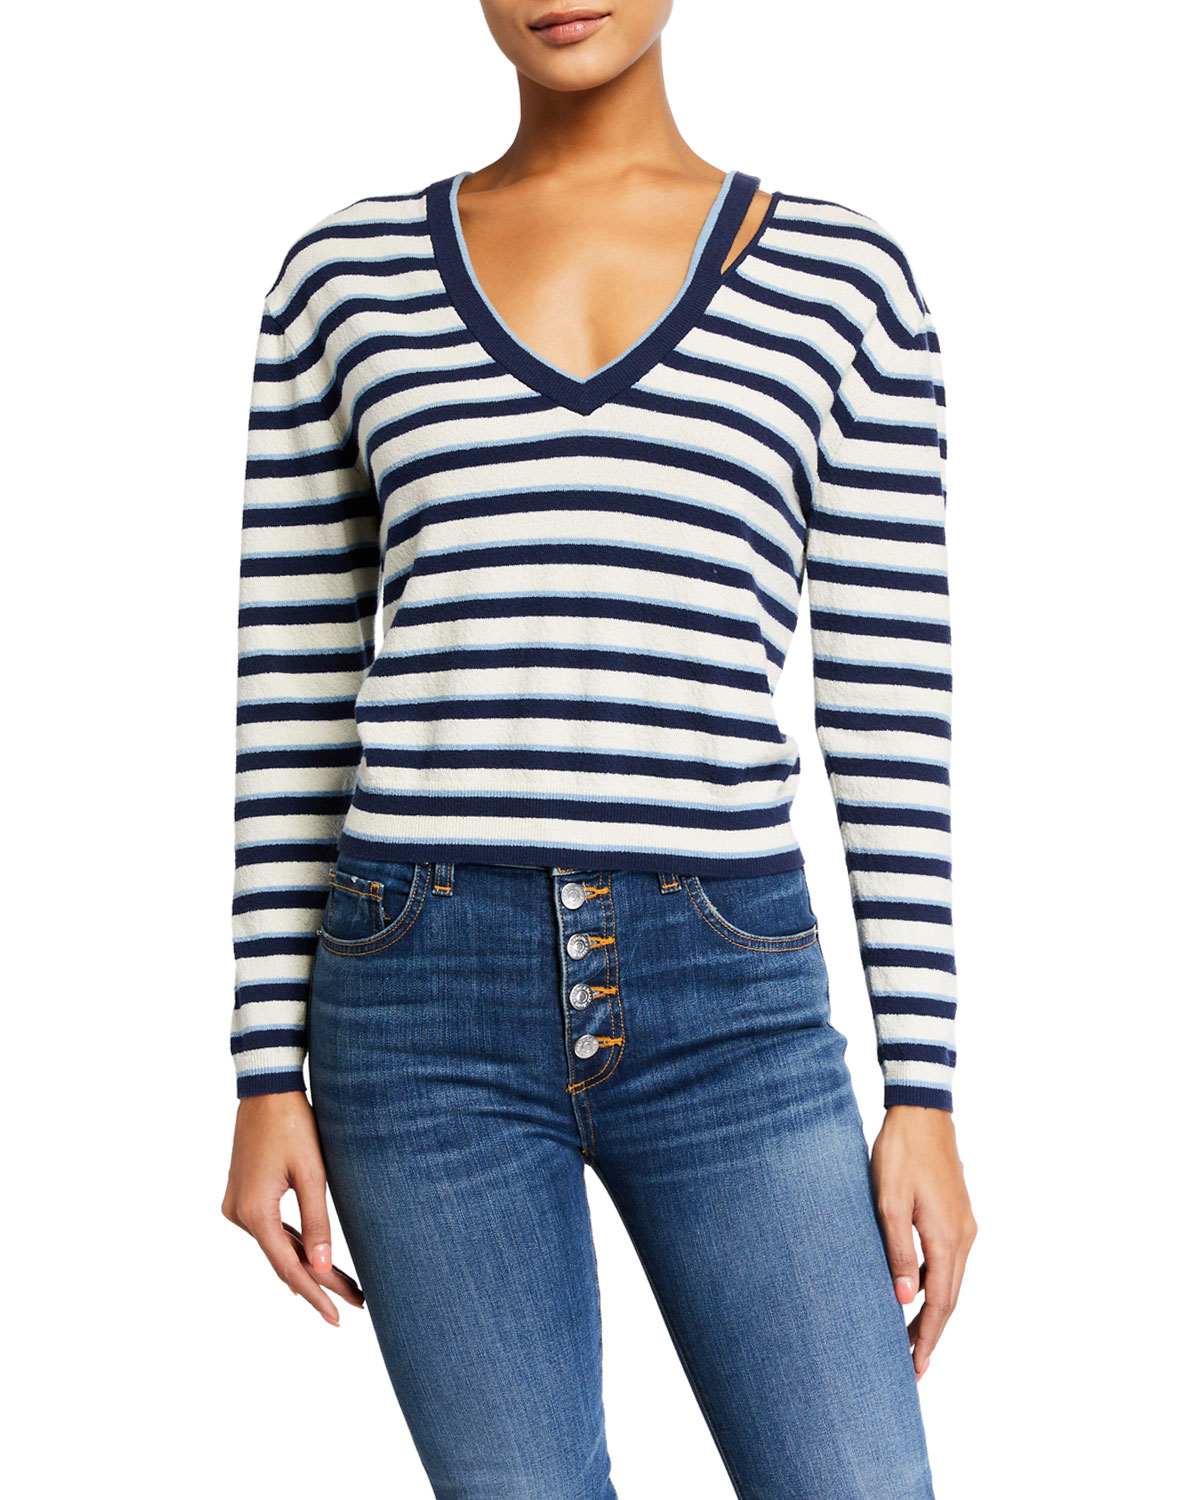 Veronica Beard Sweaters HERBIE SLIT-NECK STRIPED SWEATER